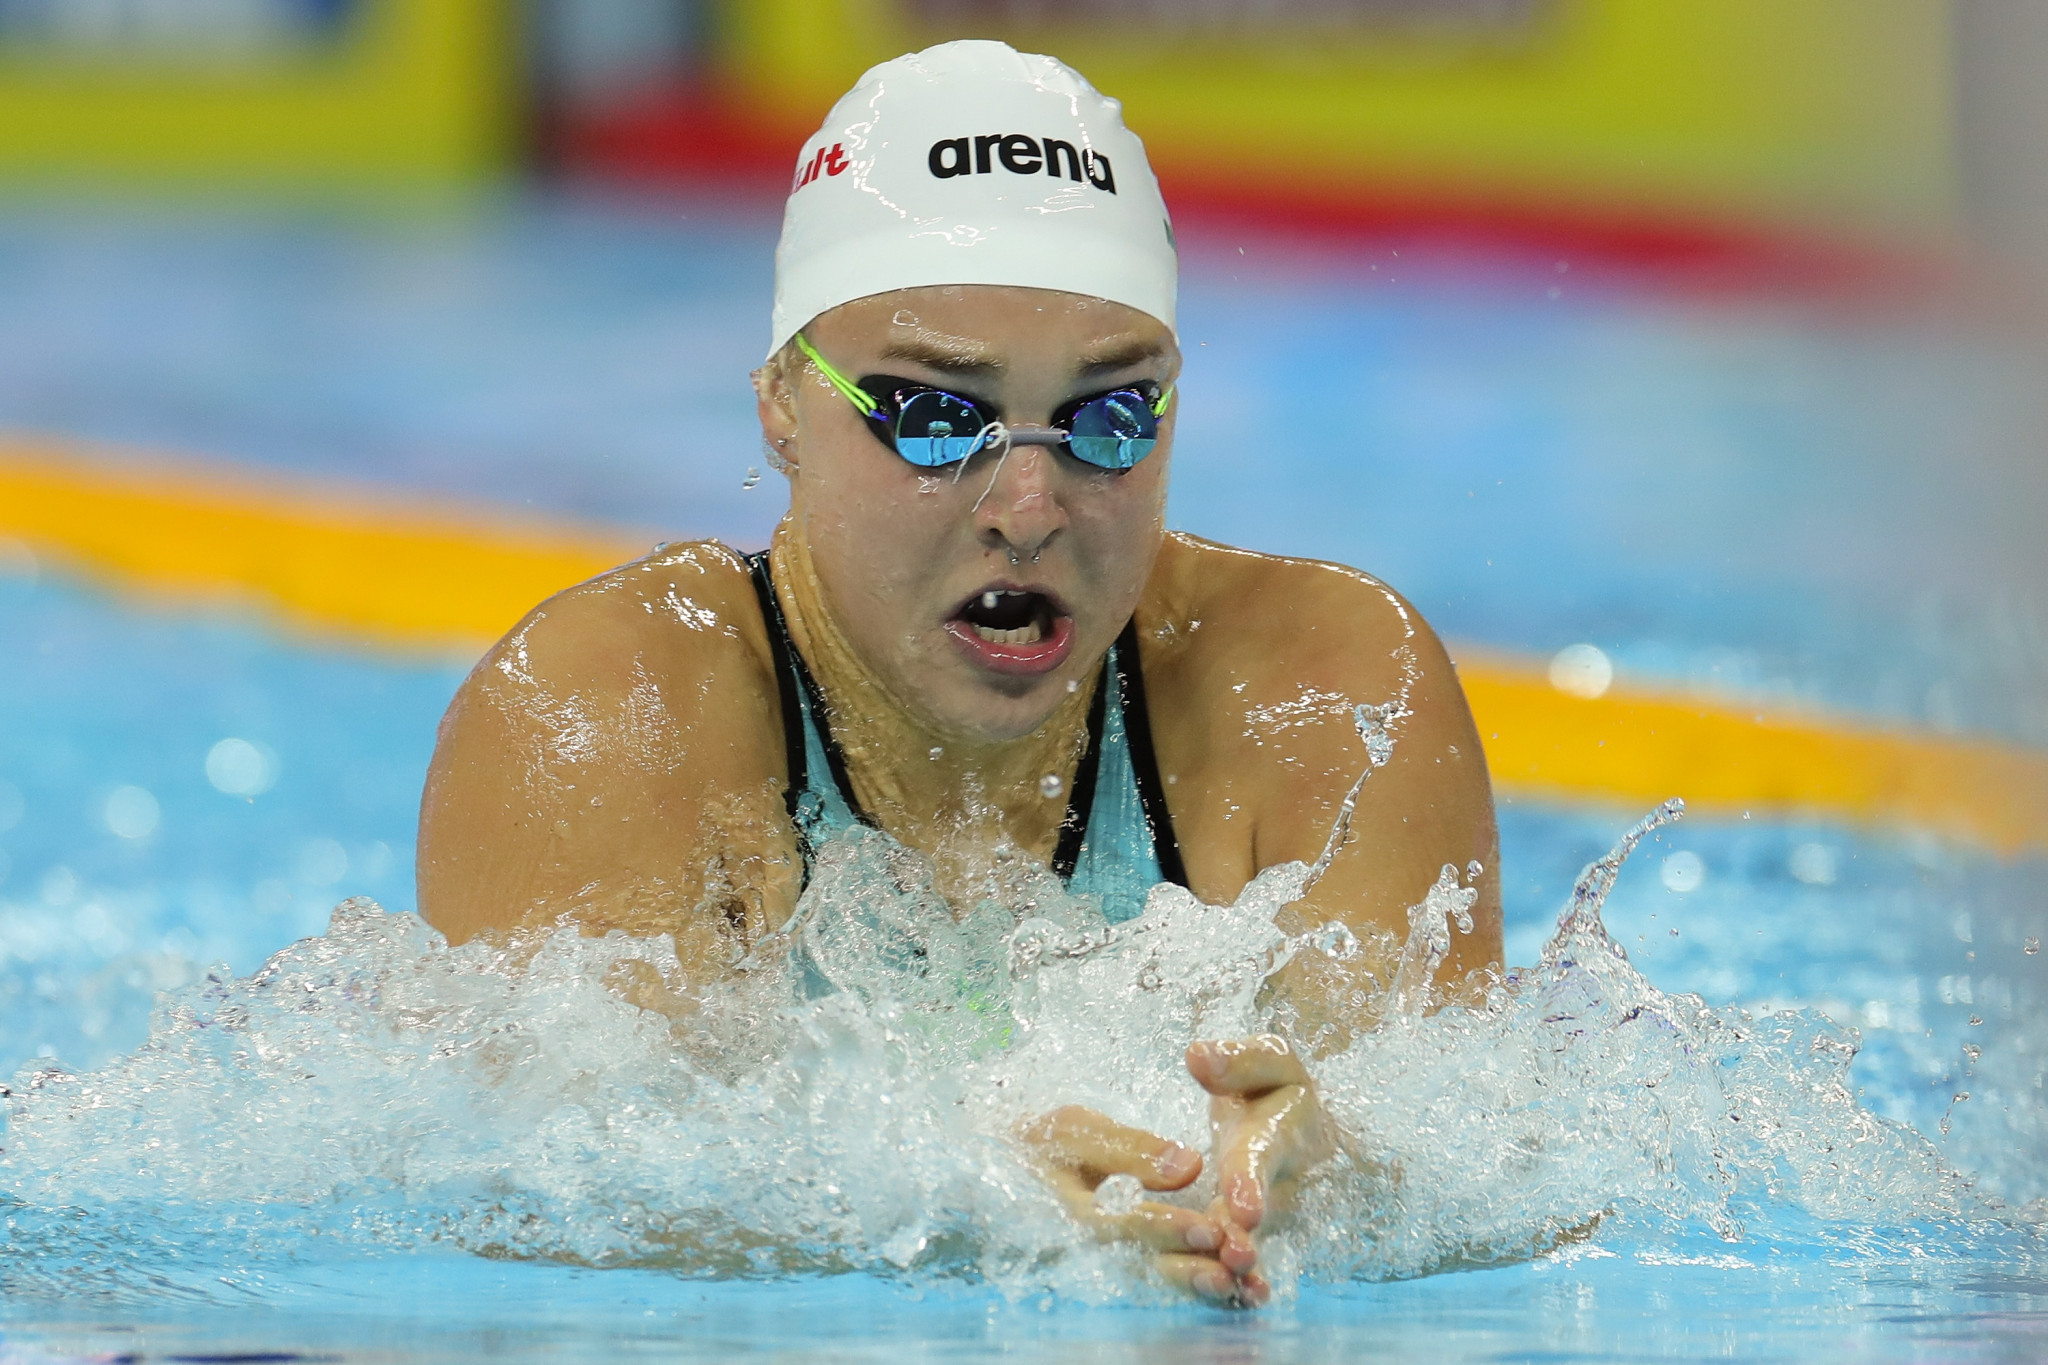 Meilutytė given two-year ban after missing three drugs tests in 12 months